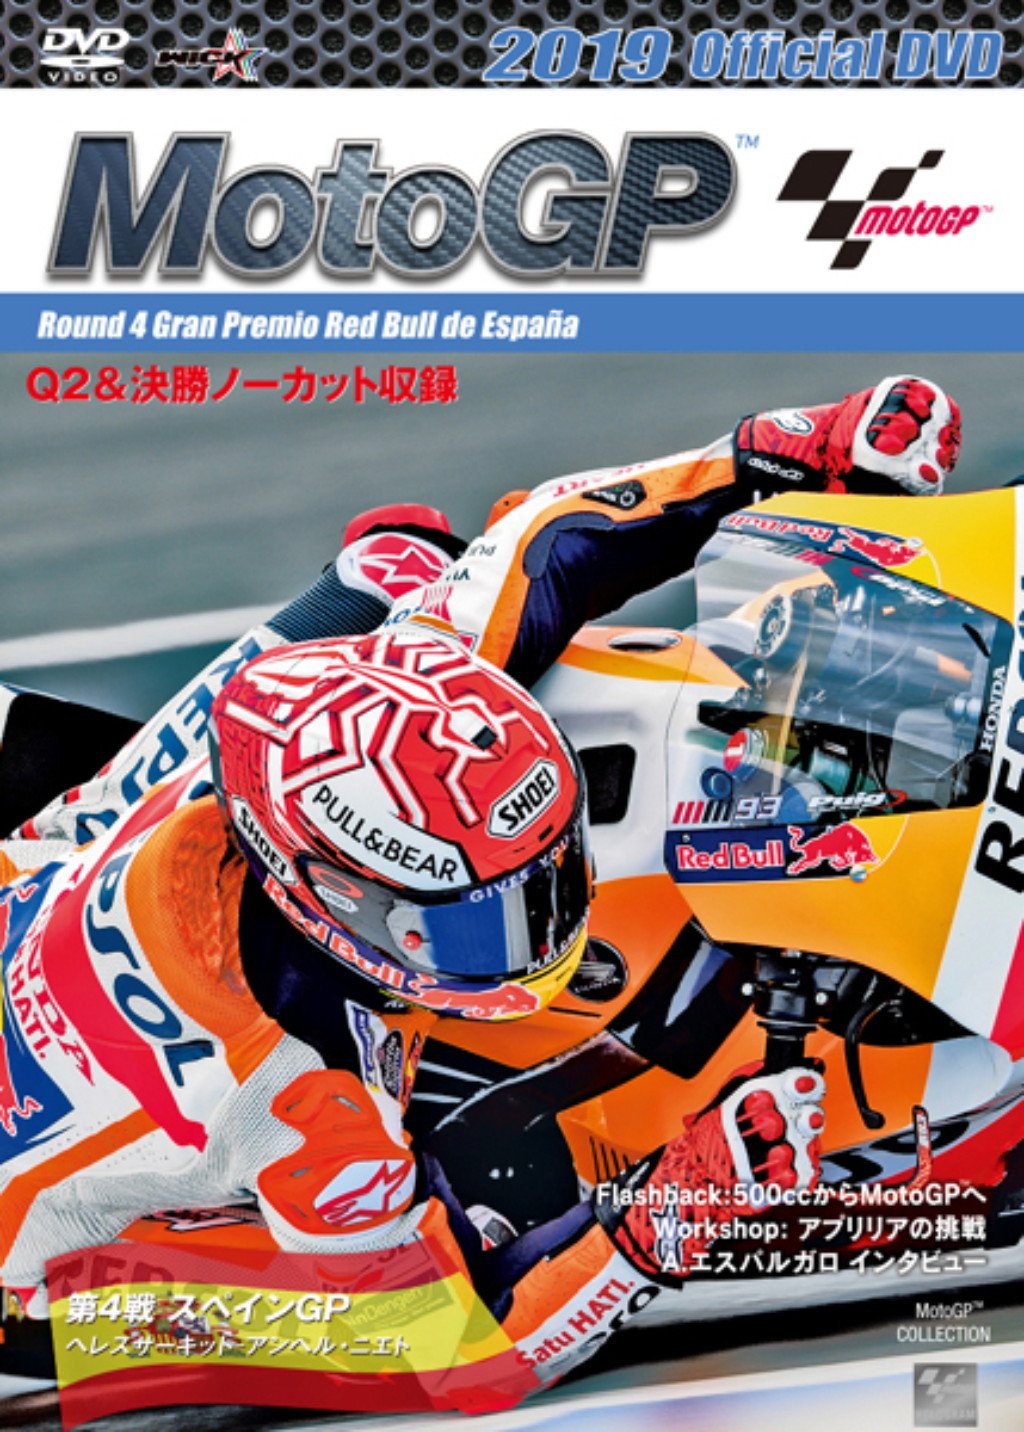 WiCK DVD officiel Tour 2019 Motogp, Spaingp